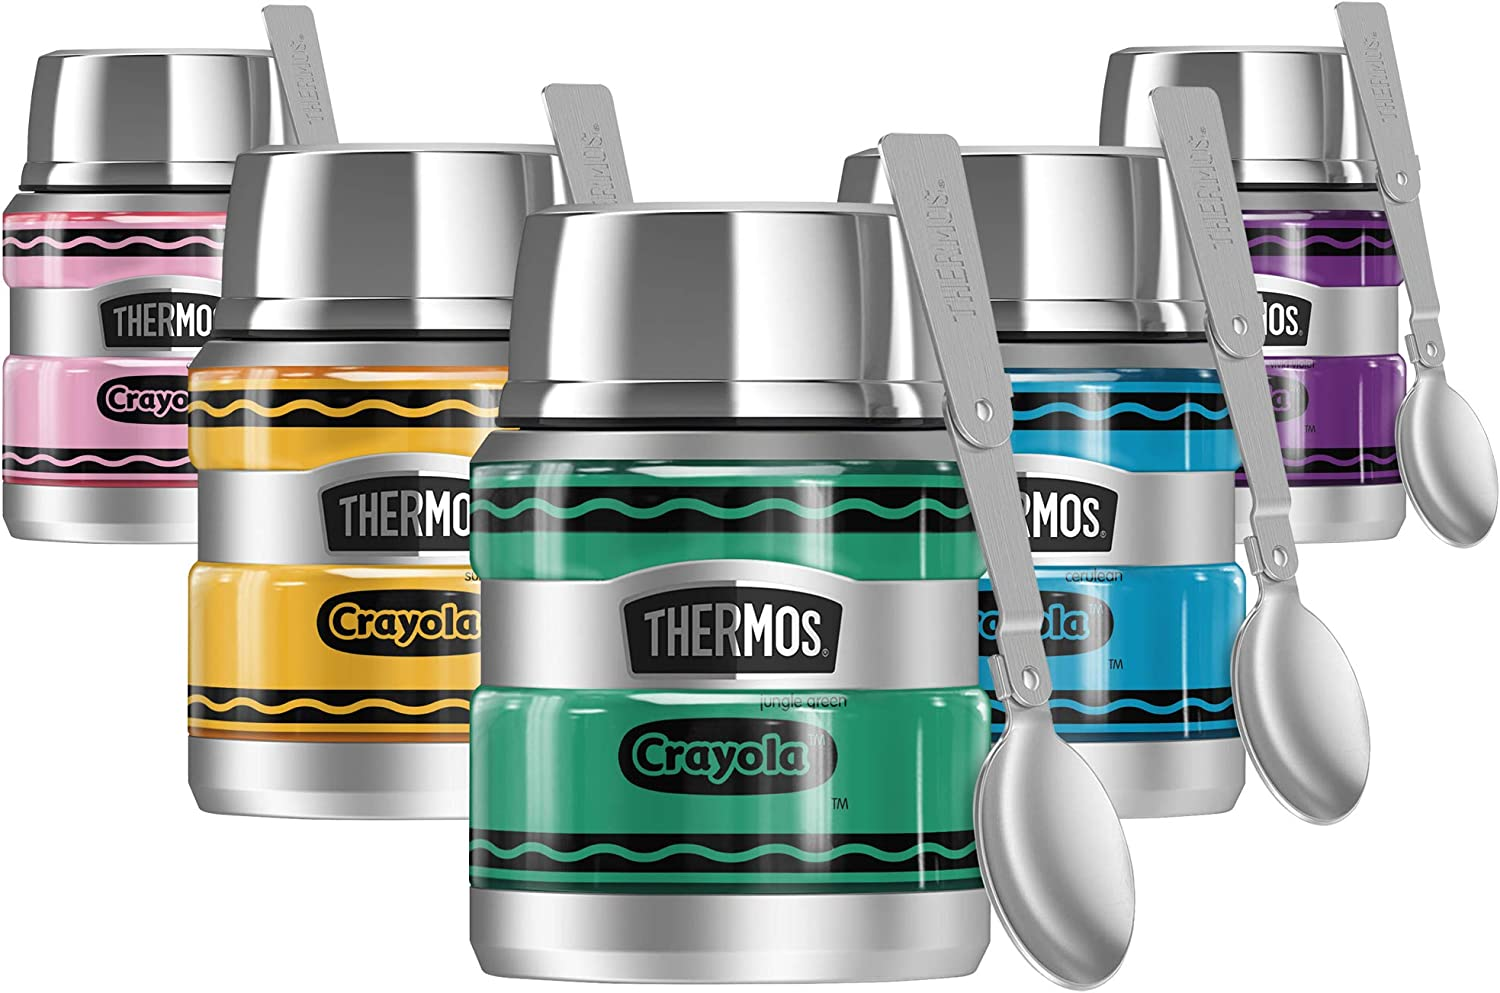 Crayola Jungle Green Crayon THERMOS STAINLESS KING Stainless Steel Food Jar with Folding Spoon, Vacuum insulated & Double Wall, 16oz